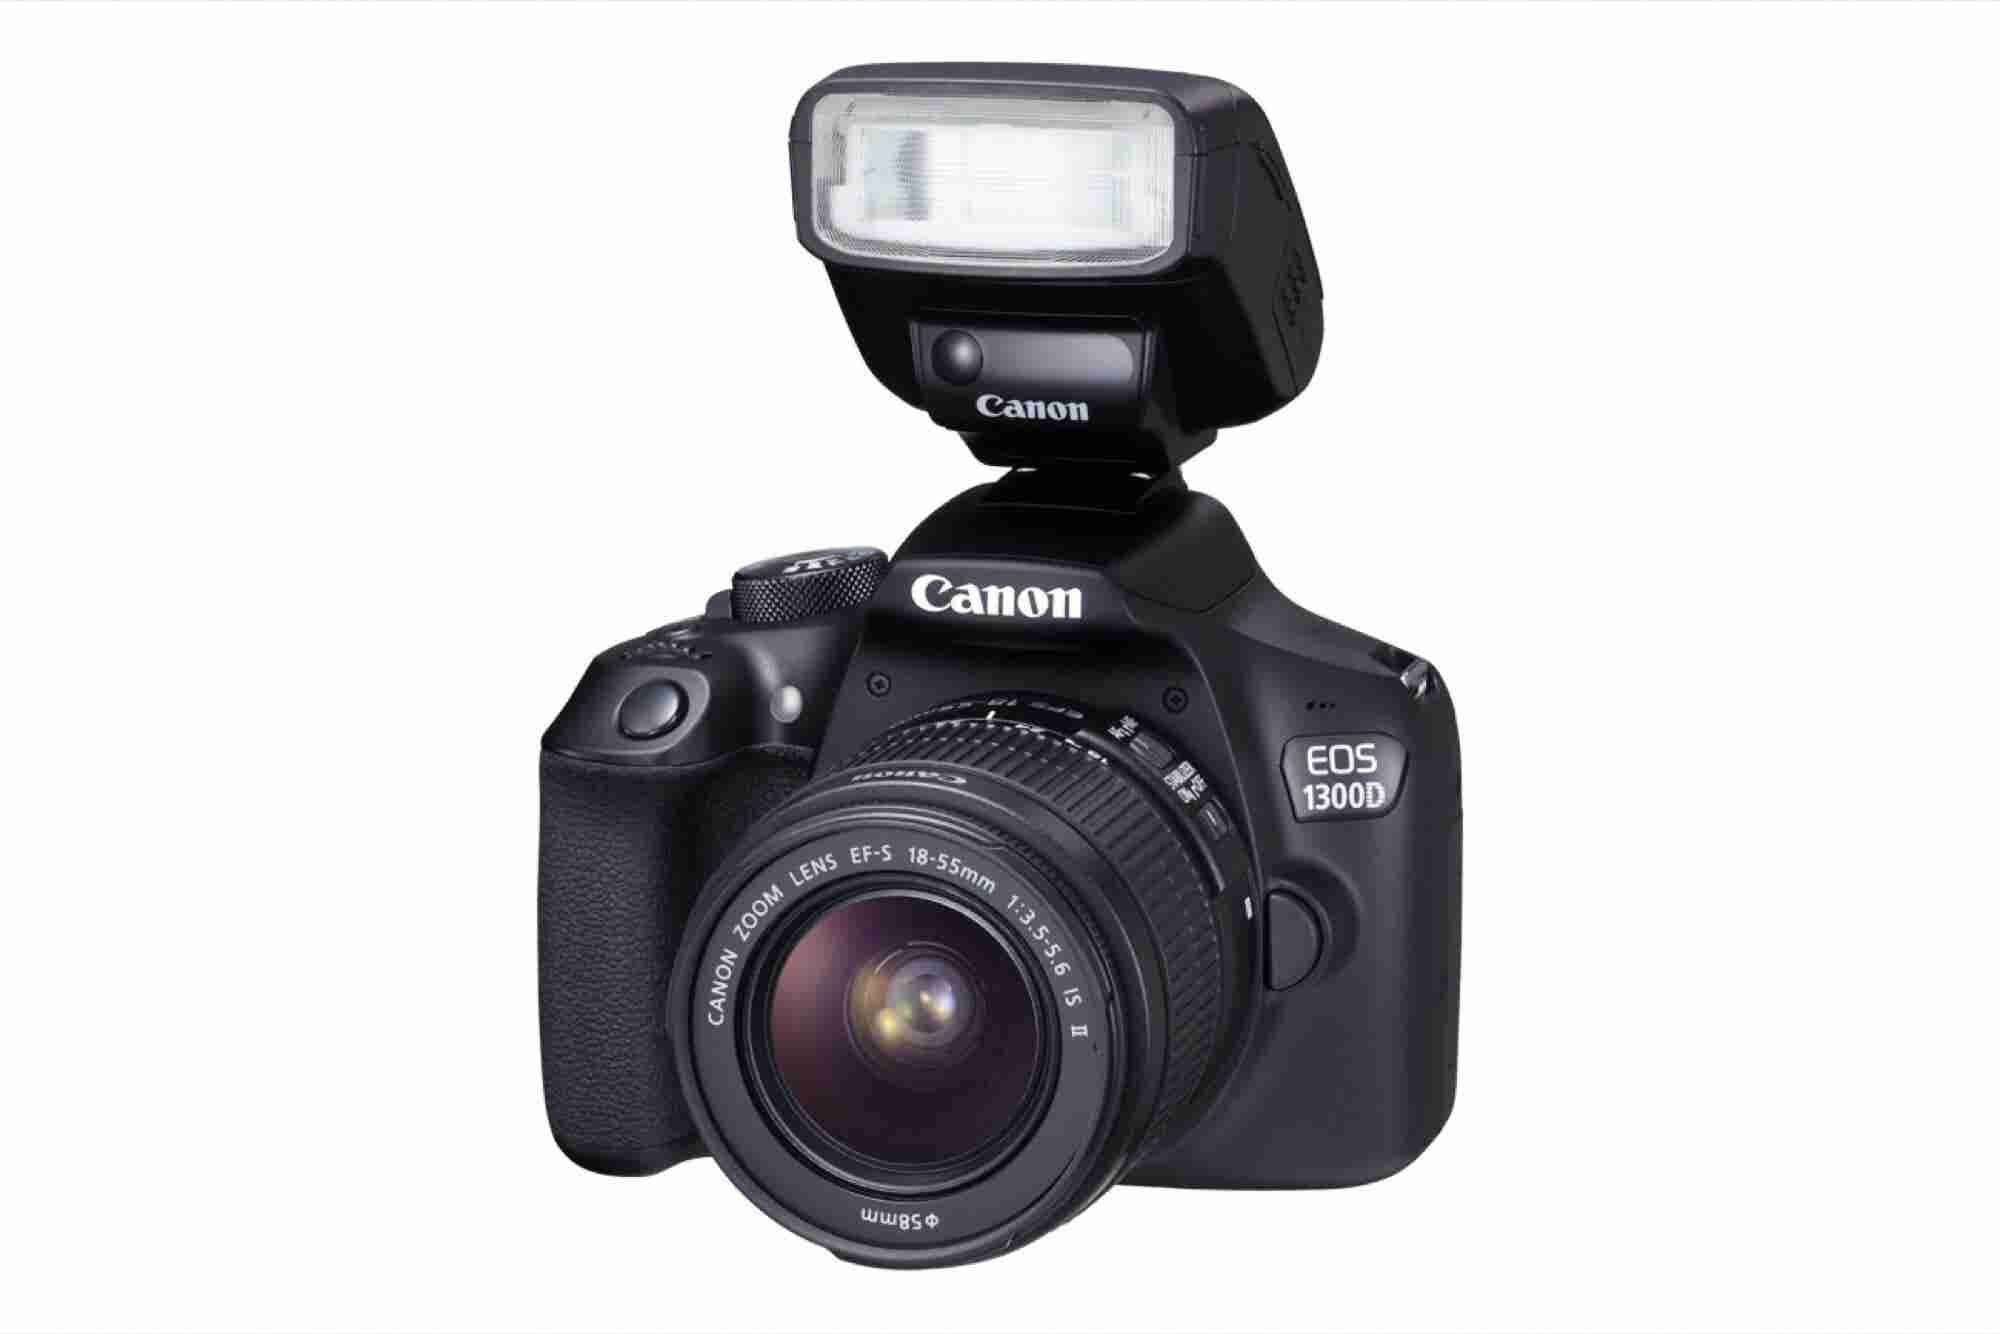 Picture This: Canon's New Entry-Level EOS DSLR